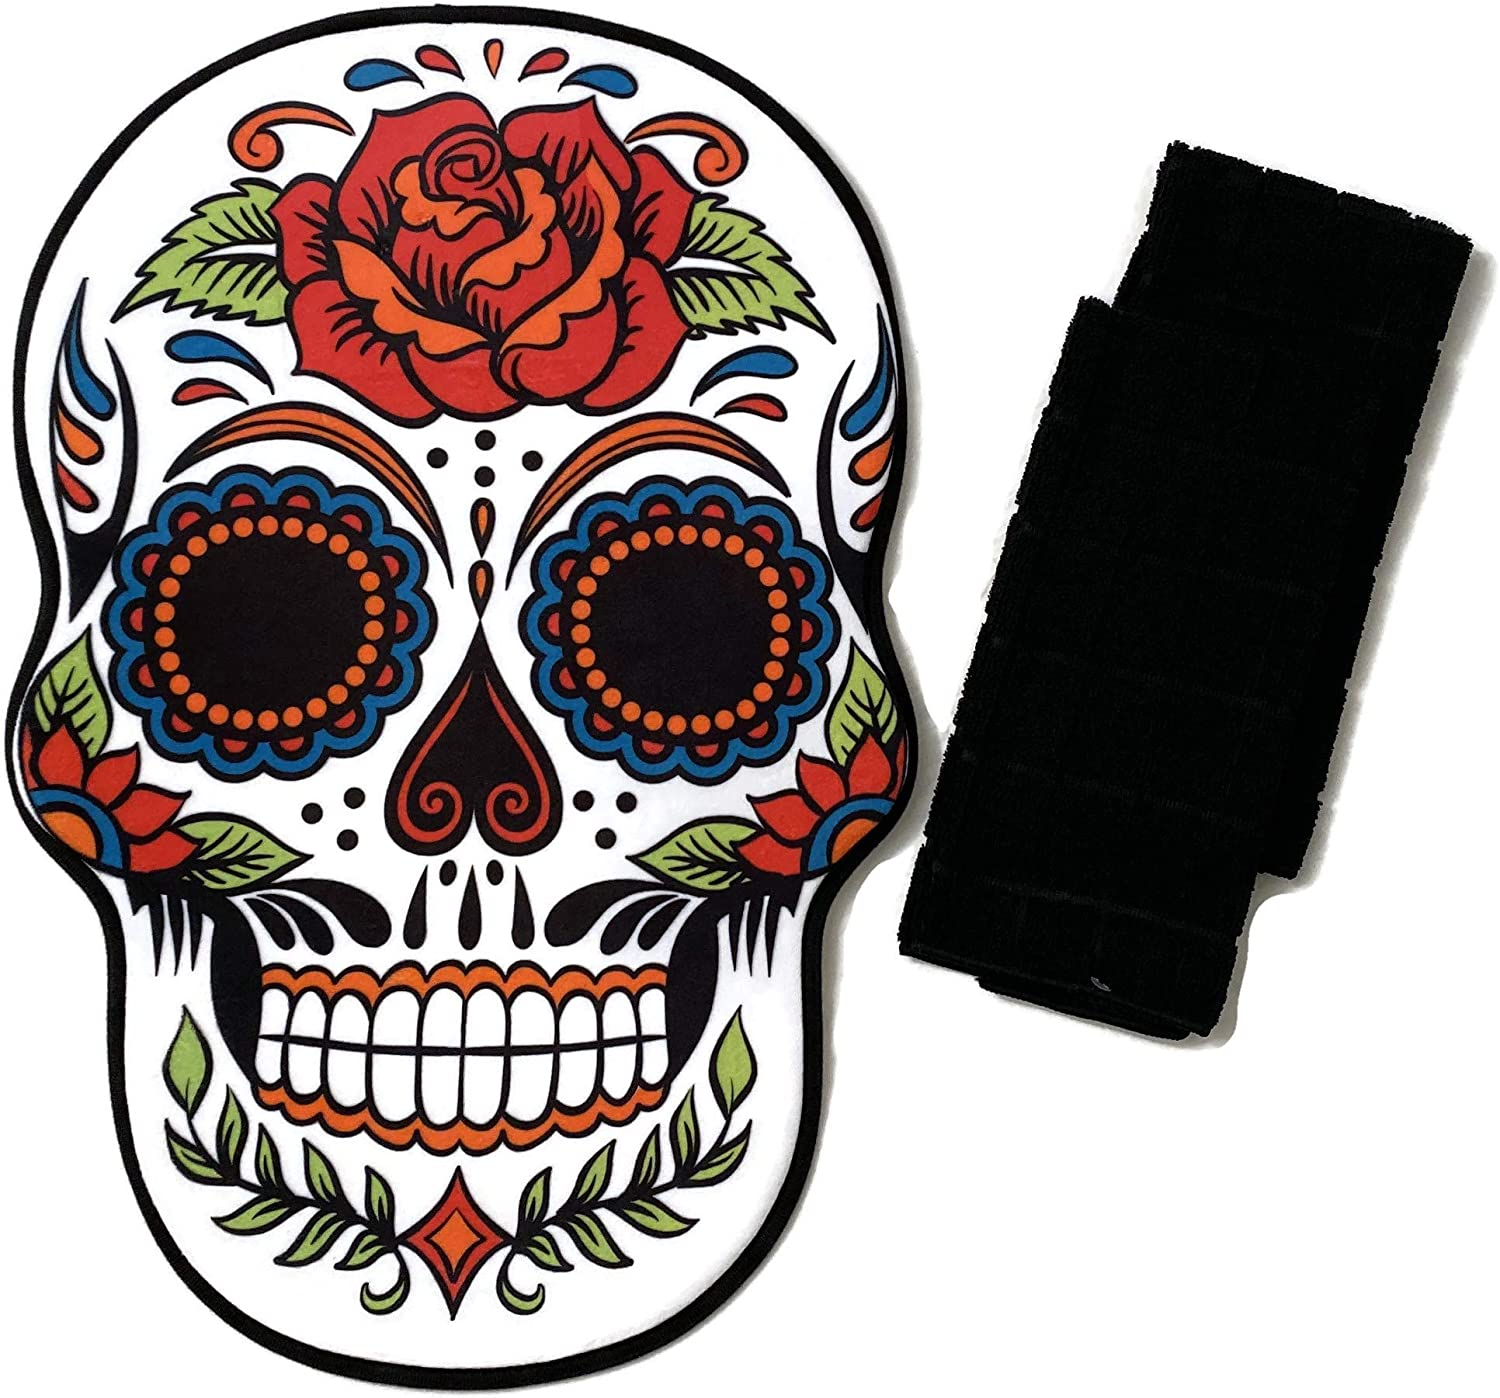 Sugar Skull Bathroom Set Bundle - Day of The Dead Halloween Skull Bathroom Floor Rug (18 x 24 in) and 2 Black Hand Towels (15 x 25 in).